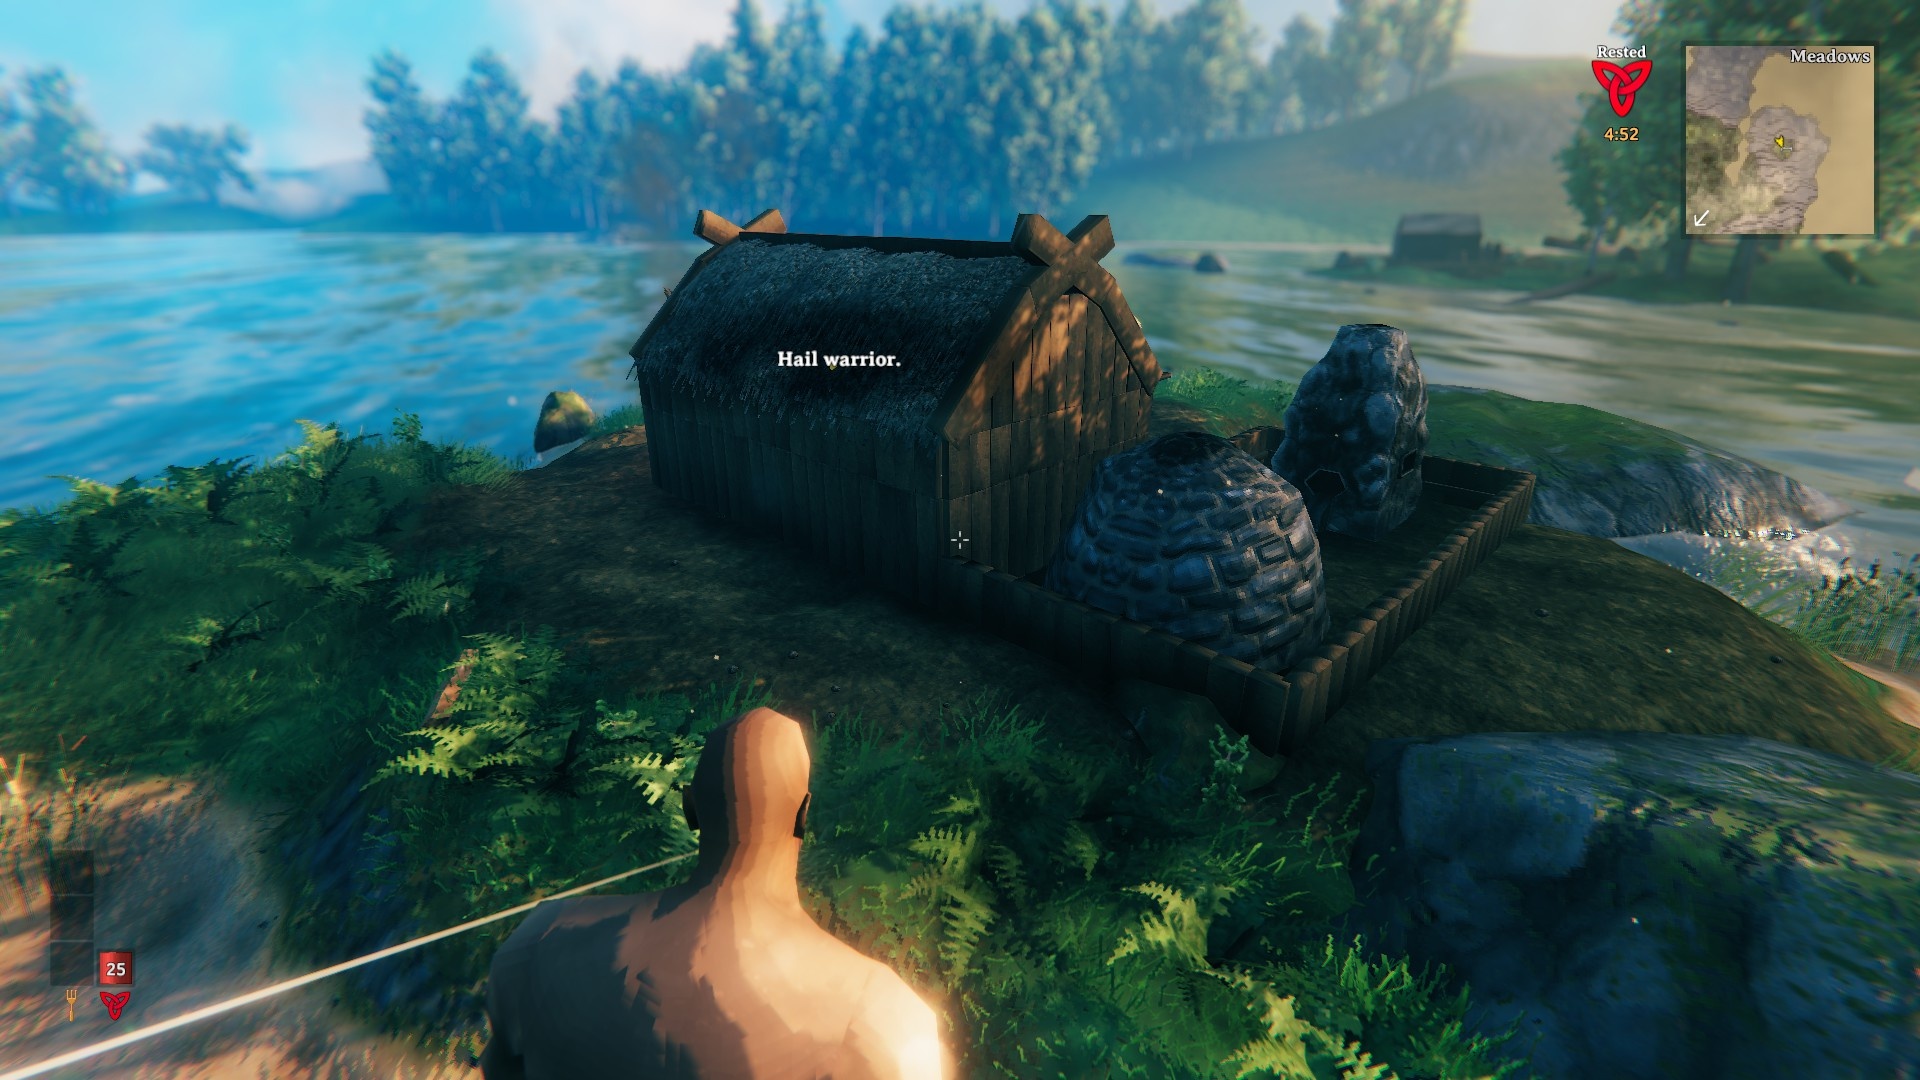 Valheim - Game Mechanics and Gameplay Tips for Beginners - How to build - 3CC6810